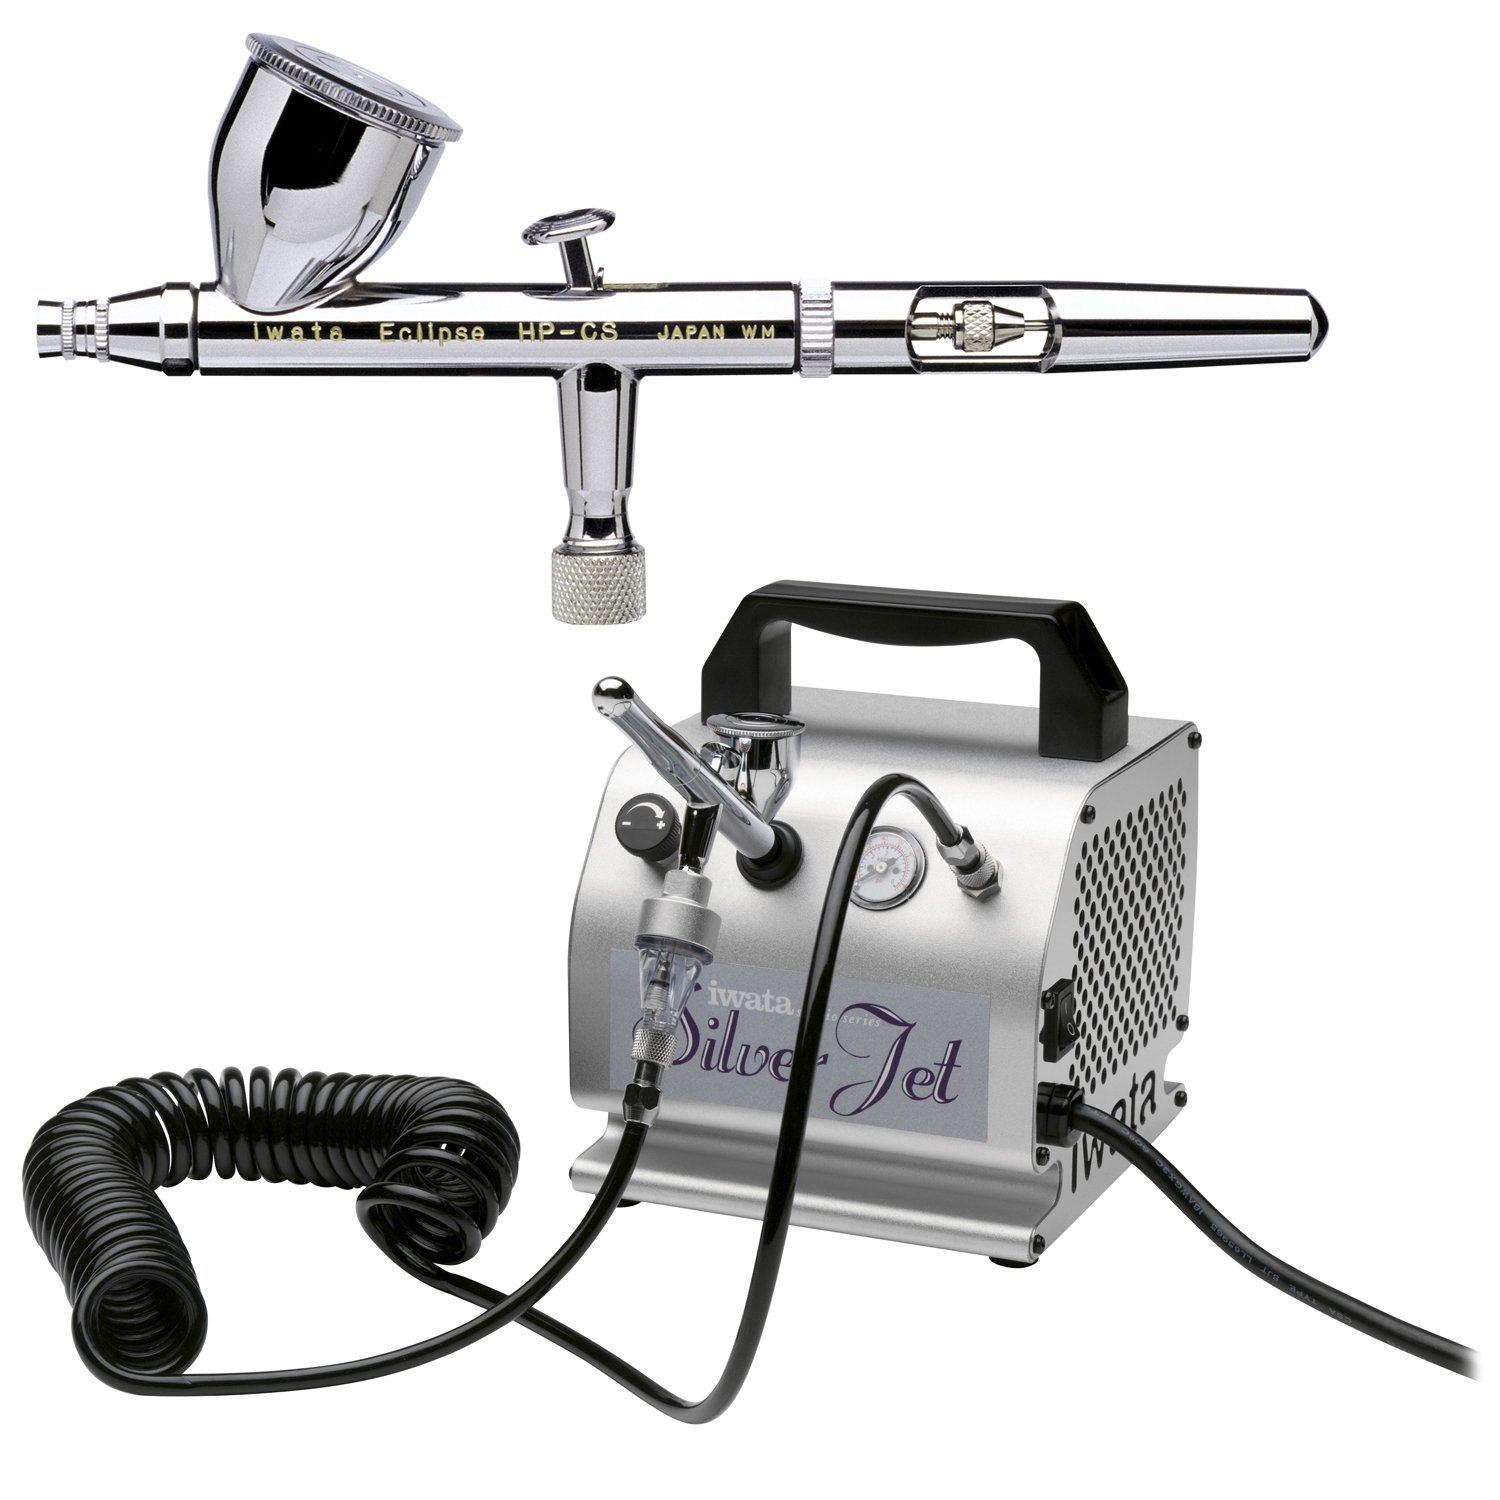 The Iwata airbrush system is highly-rated and certainly one of the best airbrush makeup kit options to consider.